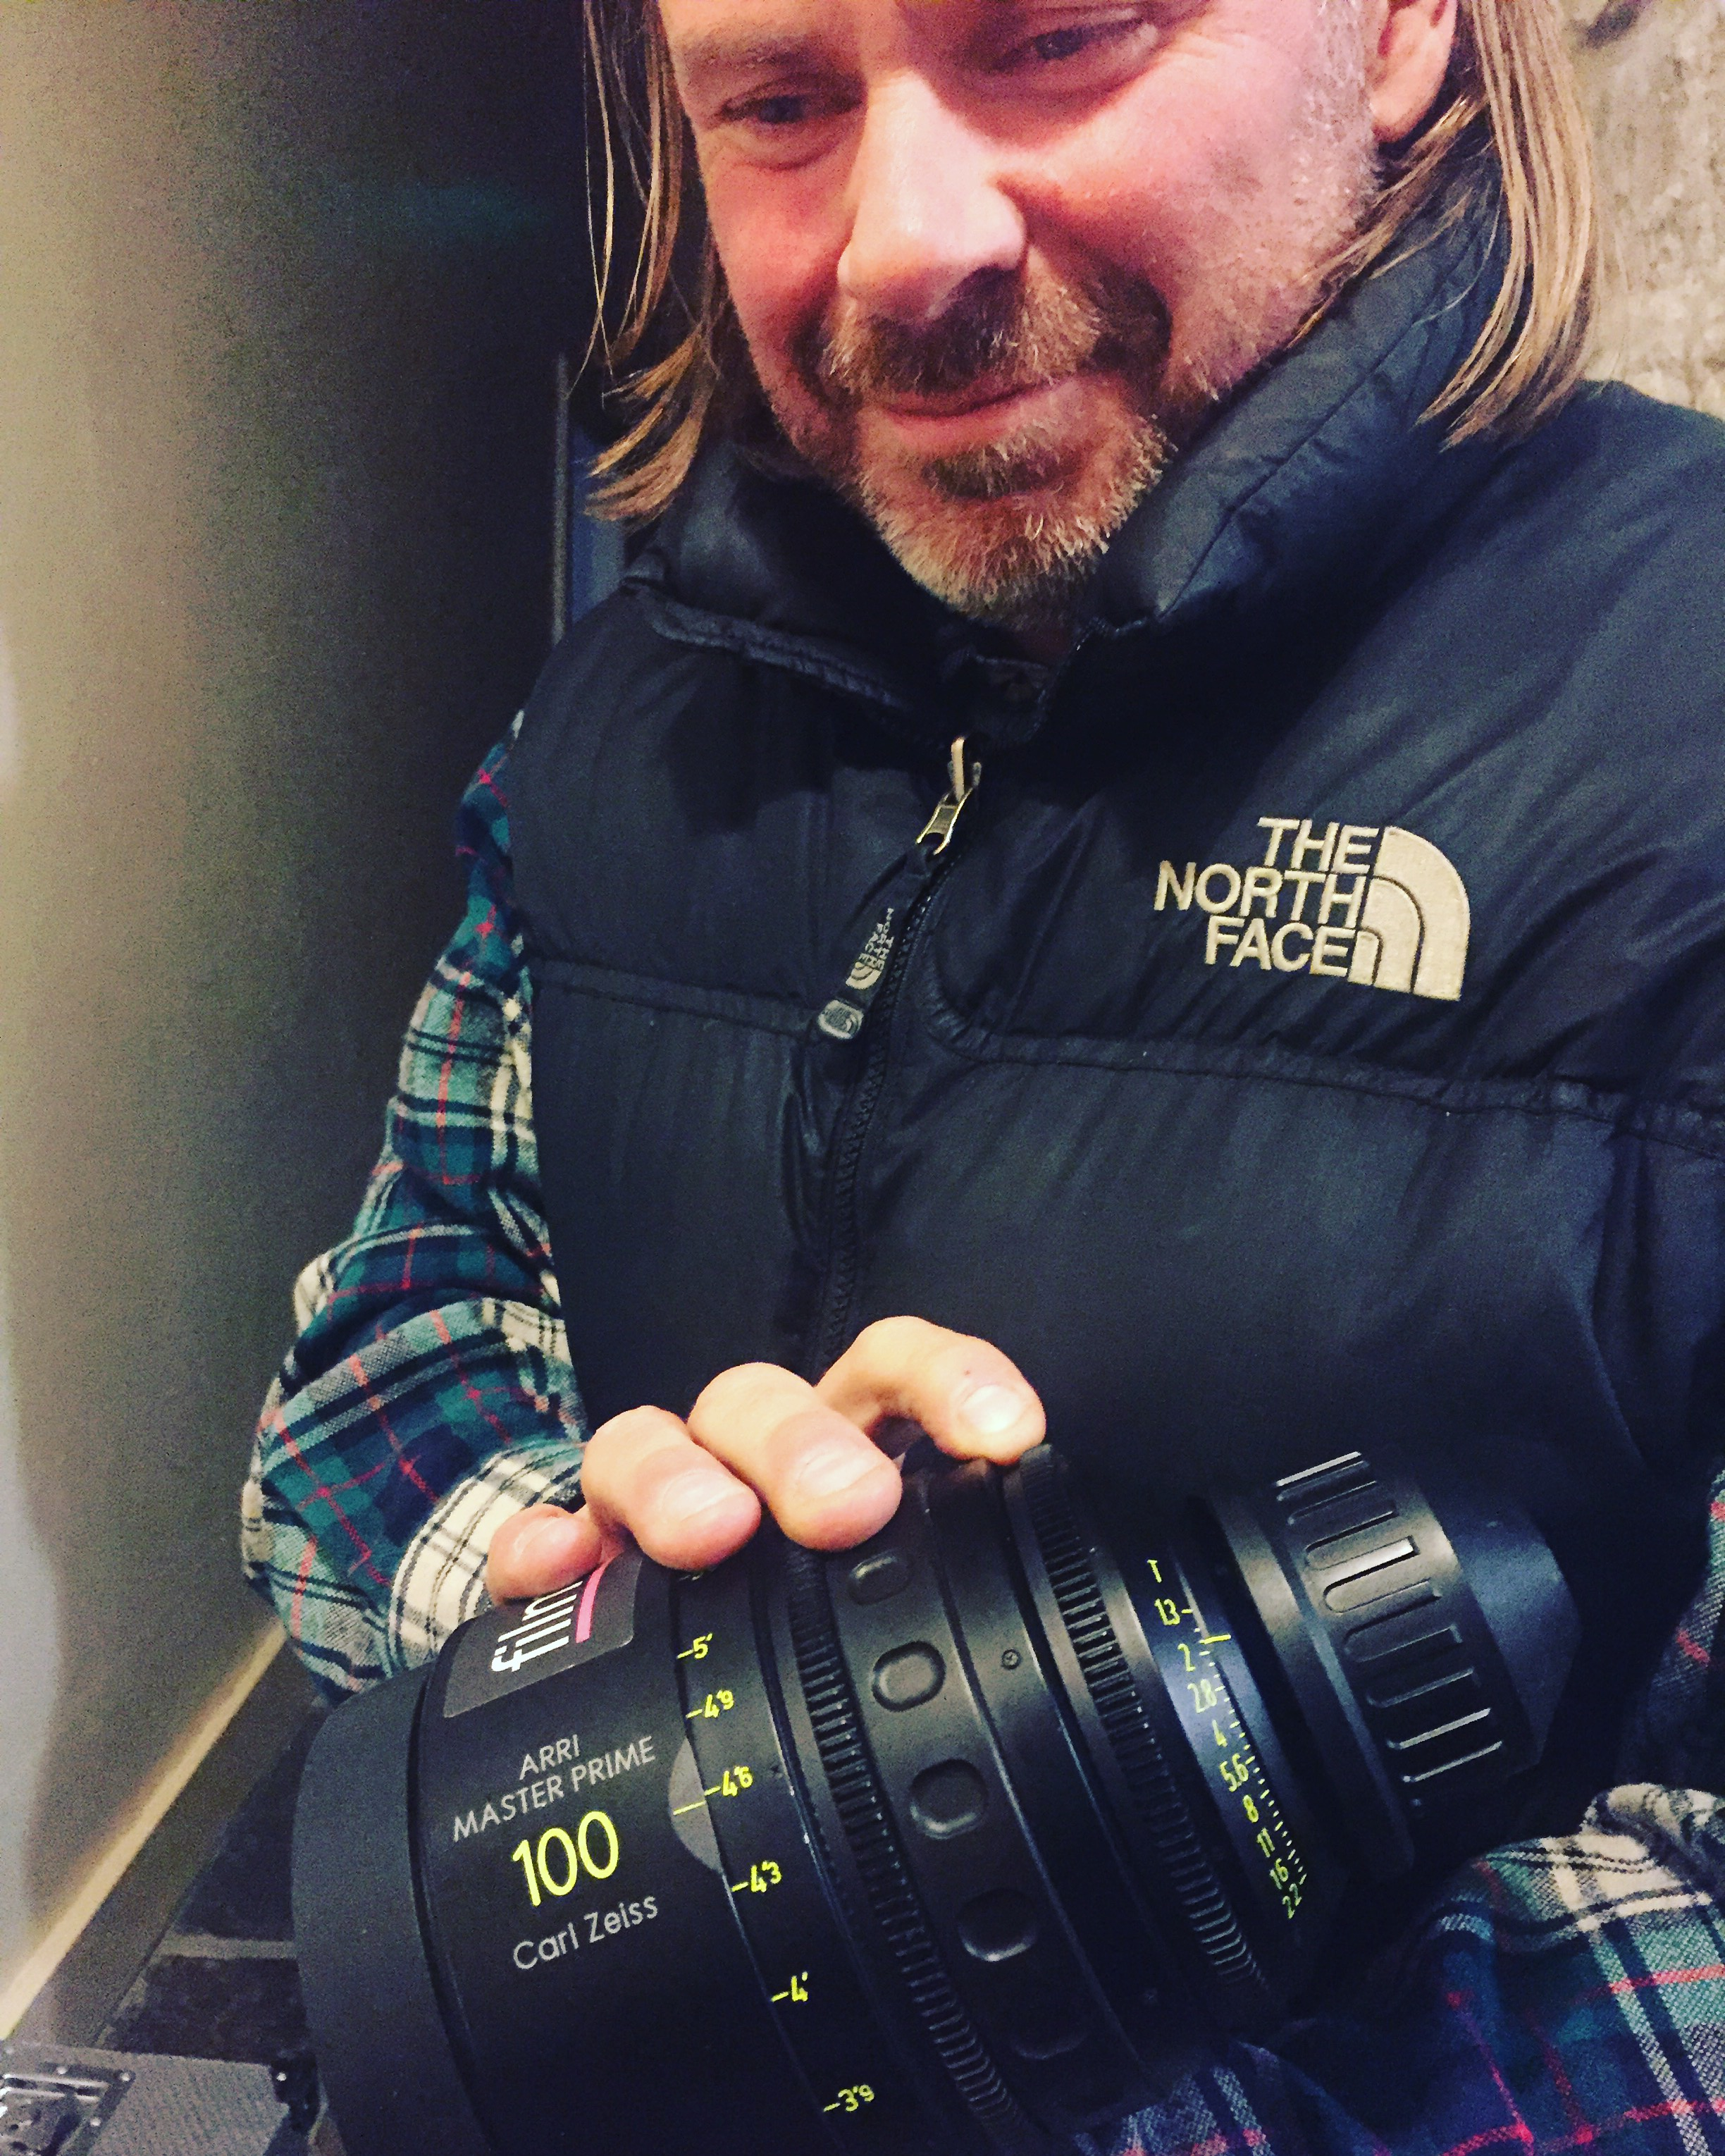 Director of Photography August Jackobsson IKS with a Carl Zeiss Master Prime lens